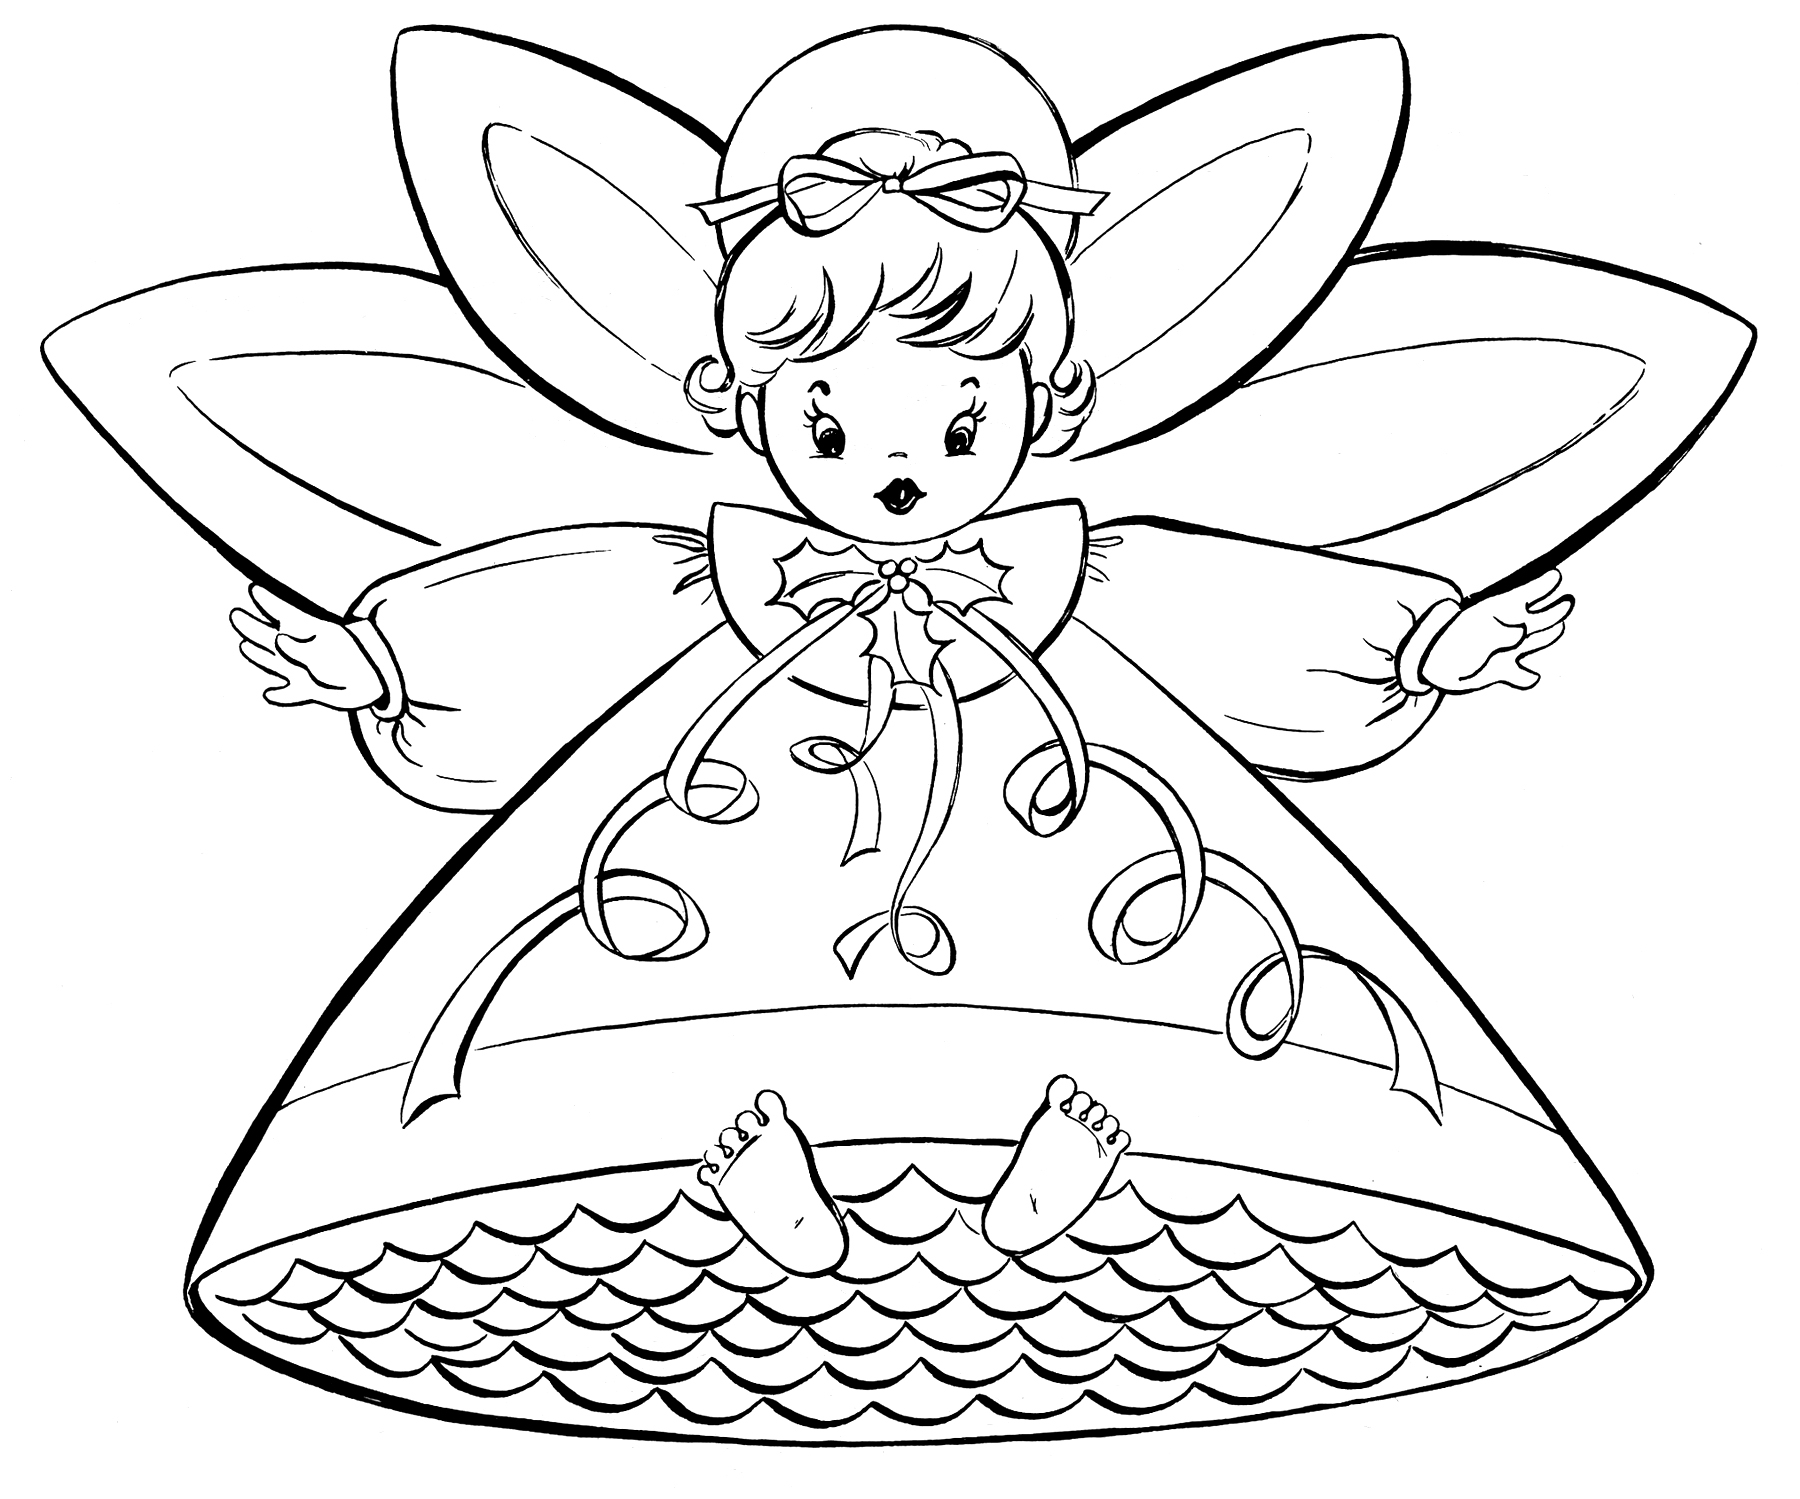 Christmas Colouring Pages That You Can Print With Free Coloring Retro Angels The Graphics Fairy